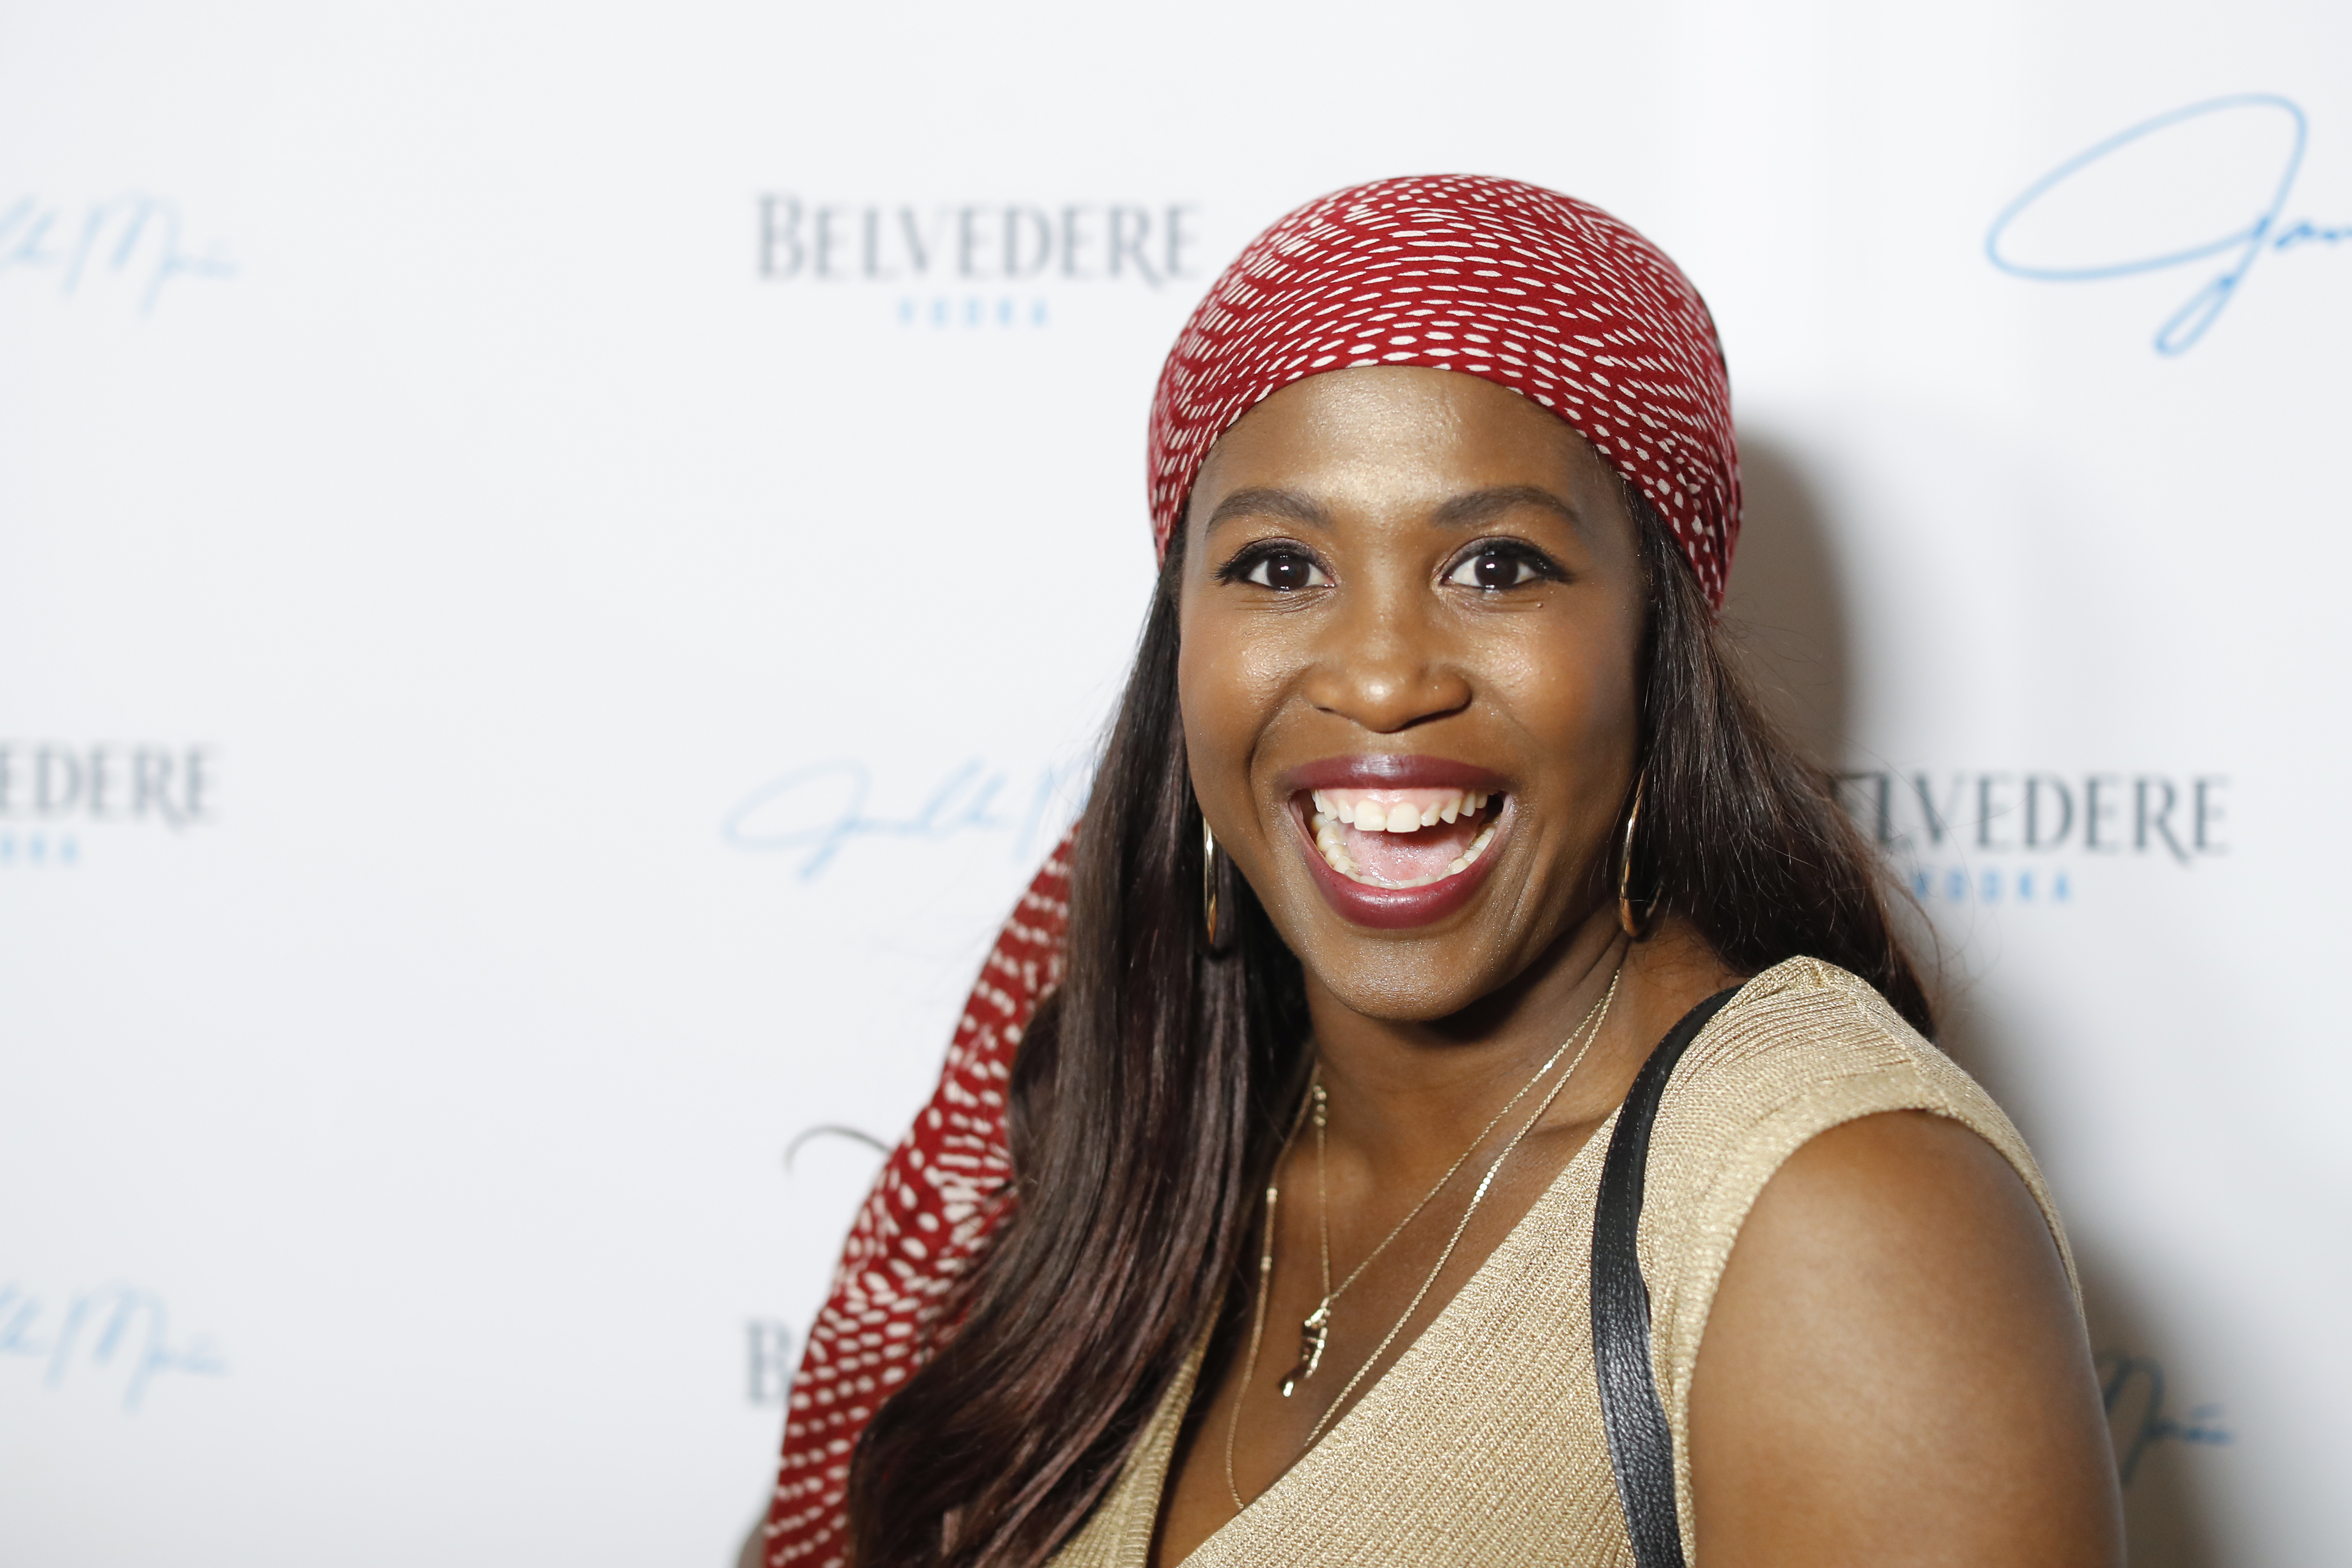 BERLIN, GERMANY - JULY 08: Motsi Mabuse during the Belvedere X Janelle Monae event at Hotel Zoo on July 8, 2019 in Berlin, Germany. (Photo by Franziska Krug/Getty Images for Belvedere)